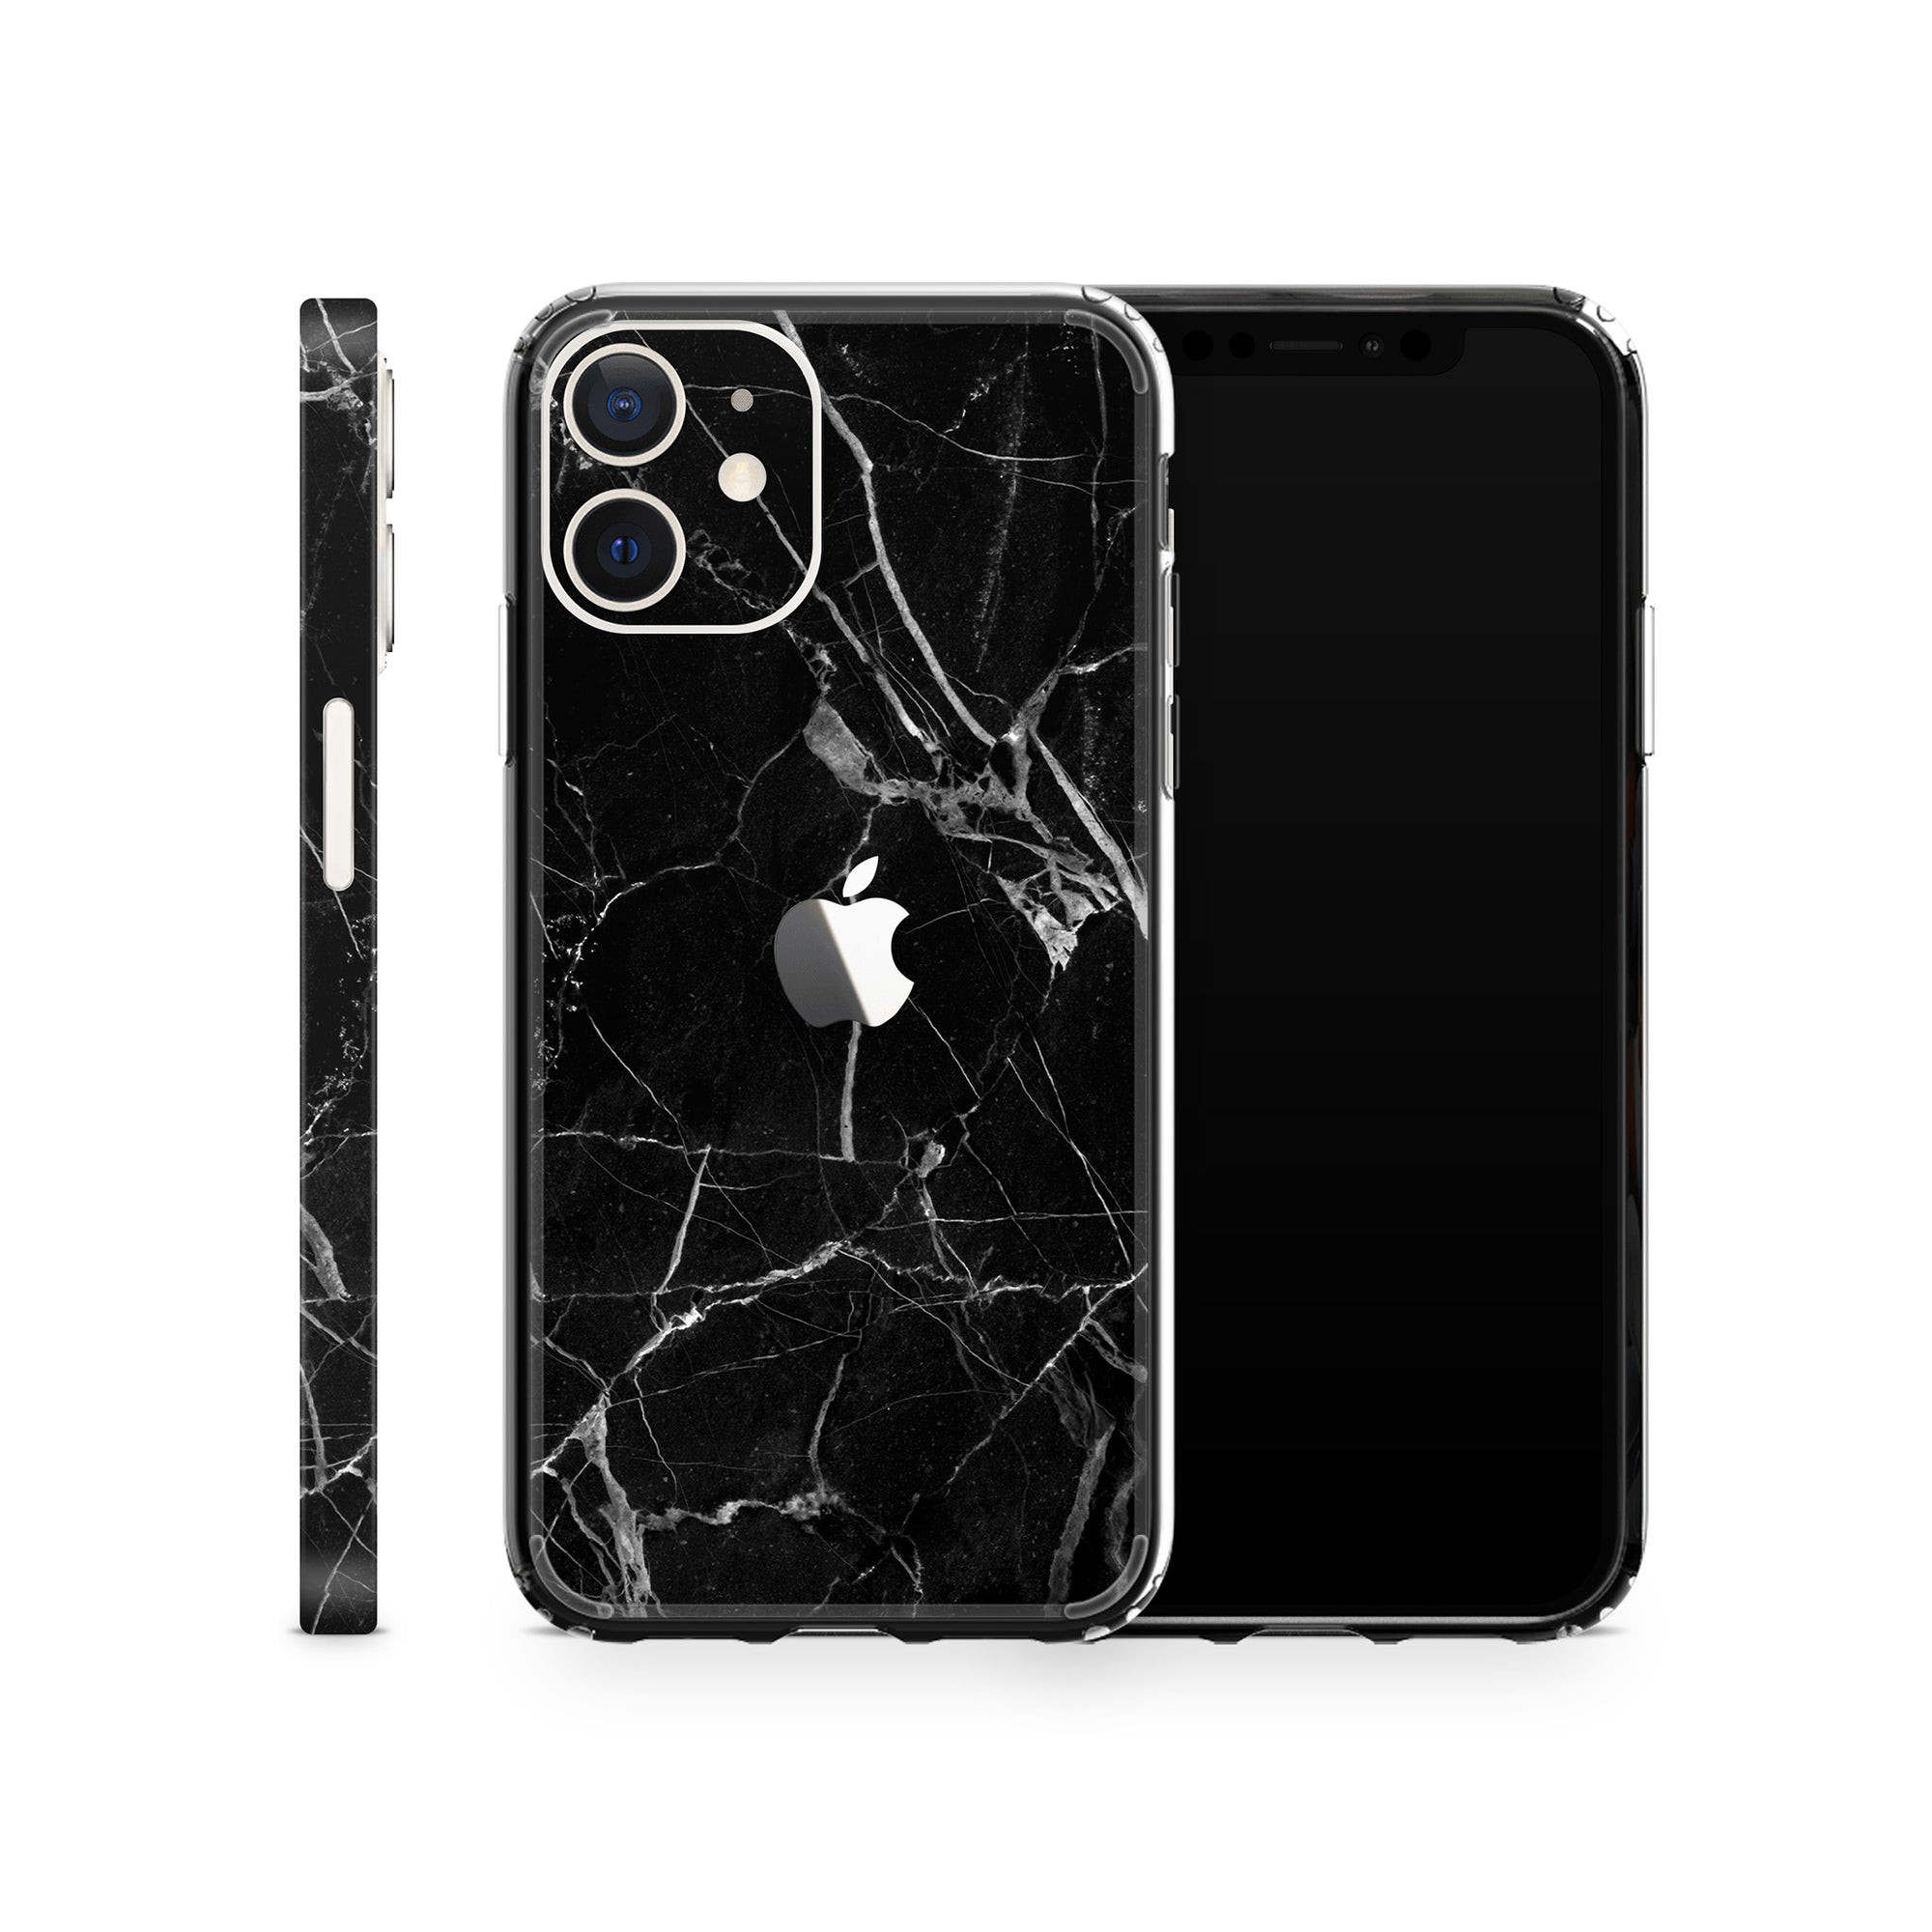 iPhone Case 12 Black Hyper